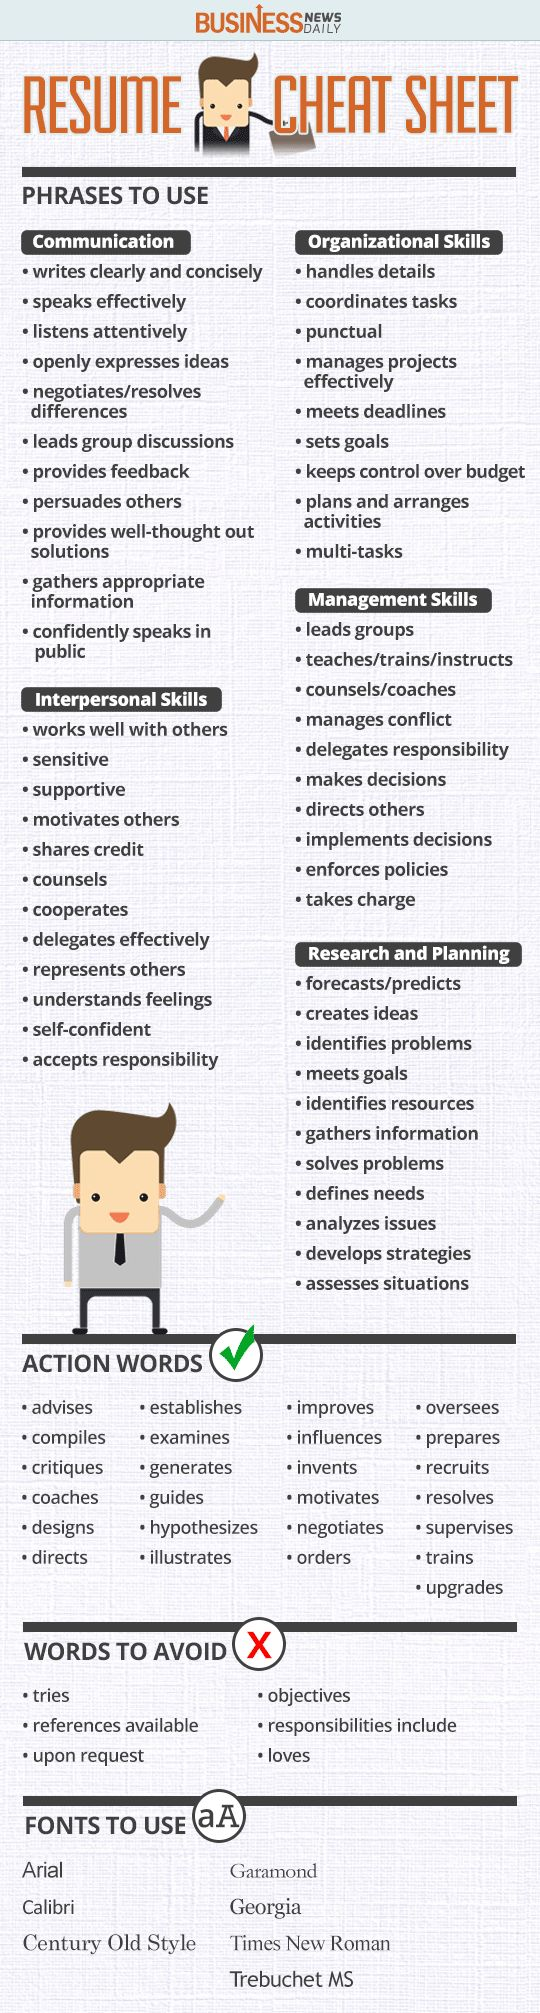 Opposenewapstandardsus  Terrific  Ideas About Resume On Pinterest  Cv Format Resume Cv And  With Magnificent Resume Cheat Sheet Infographic Andrews Almost Done With A Complete Unit On Employment Which With Delightful Lpn Resume Also Truck Driver Resume In Addition Customer Service Resume Objective And Resume Summary Statement As Well As Resume App Additionally Best Resume Templates From Pinterestcom With Opposenewapstandardsus  Magnificent  Ideas About Resume On Pinterest  Cv Format Resume Cv And  With Delightful Resume Cheat Sheet Infographic Andrews Almost Done With A Complete Unit On Employment Which And Terrific Lpn Resume Also Truck Driver Resume In Addition Customer Service Resume Objective From Pinterestcom